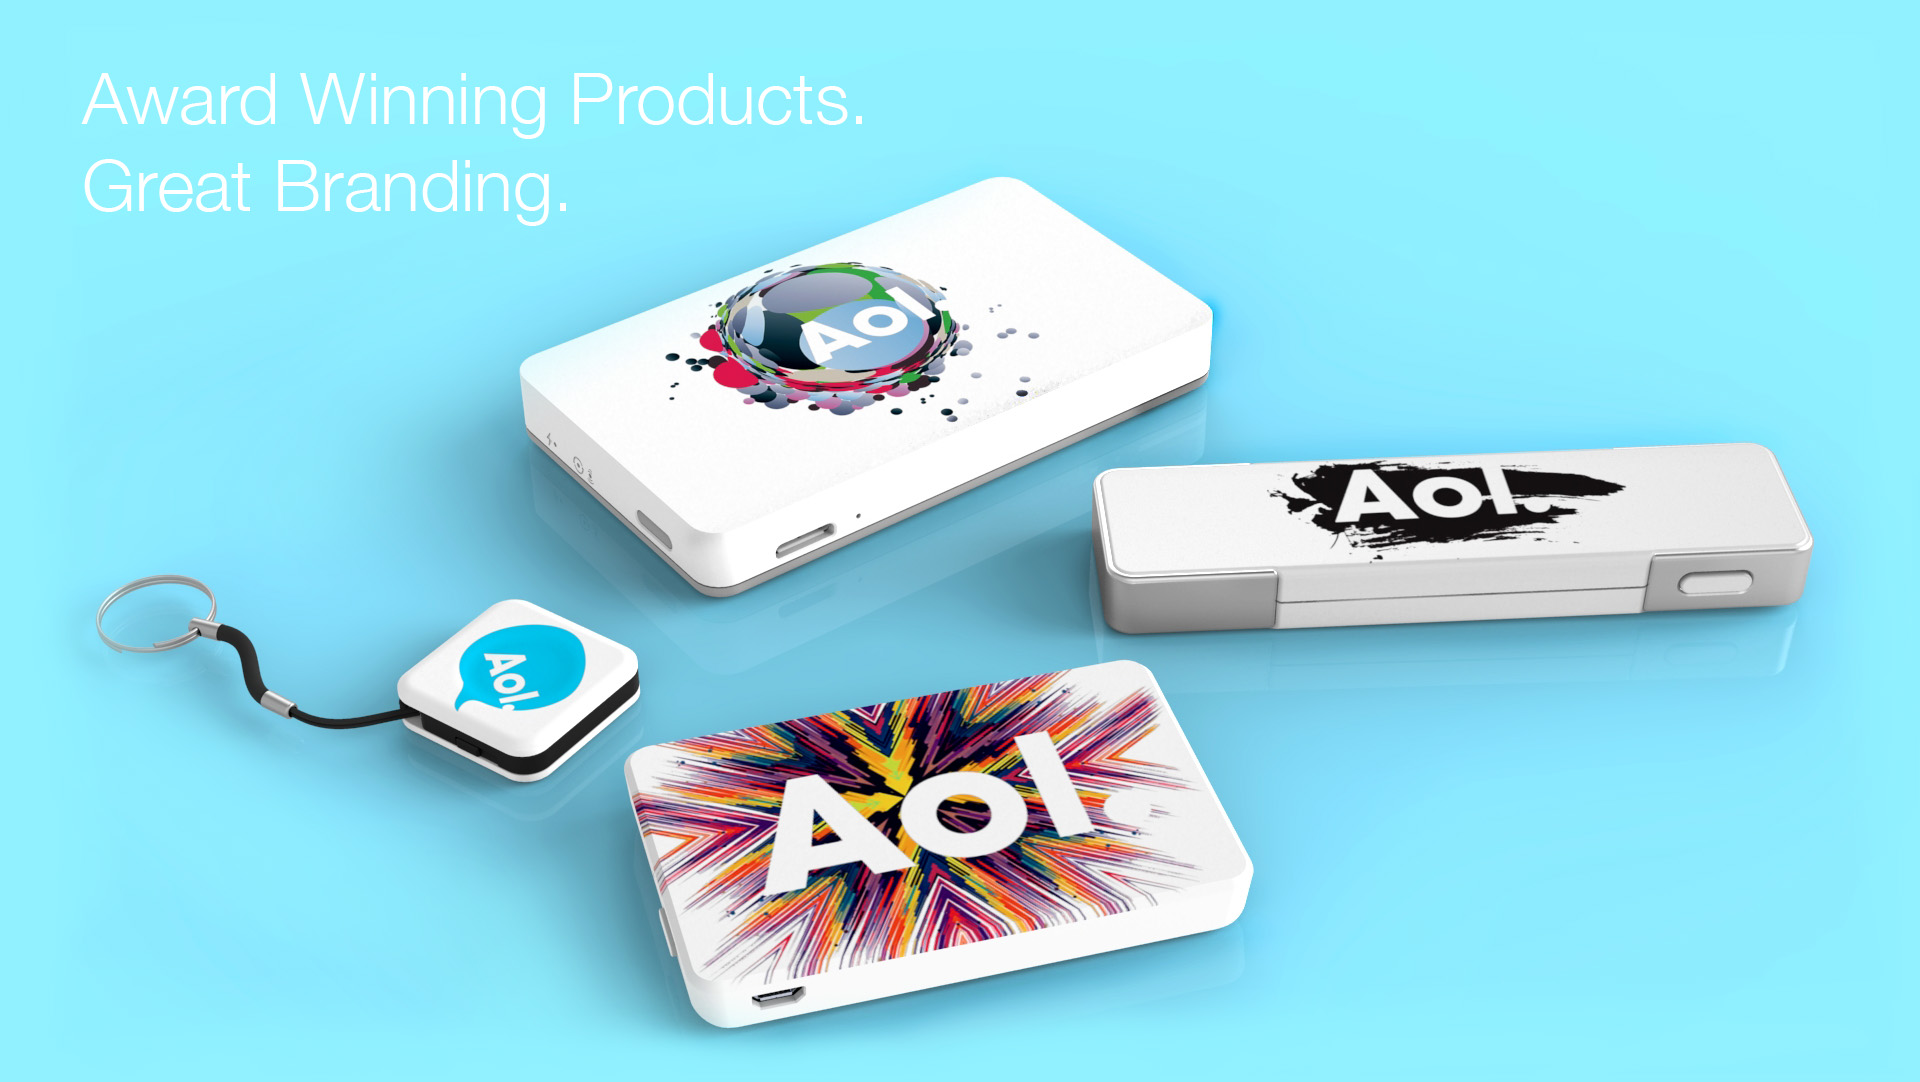 PowerStick products with corporate branding